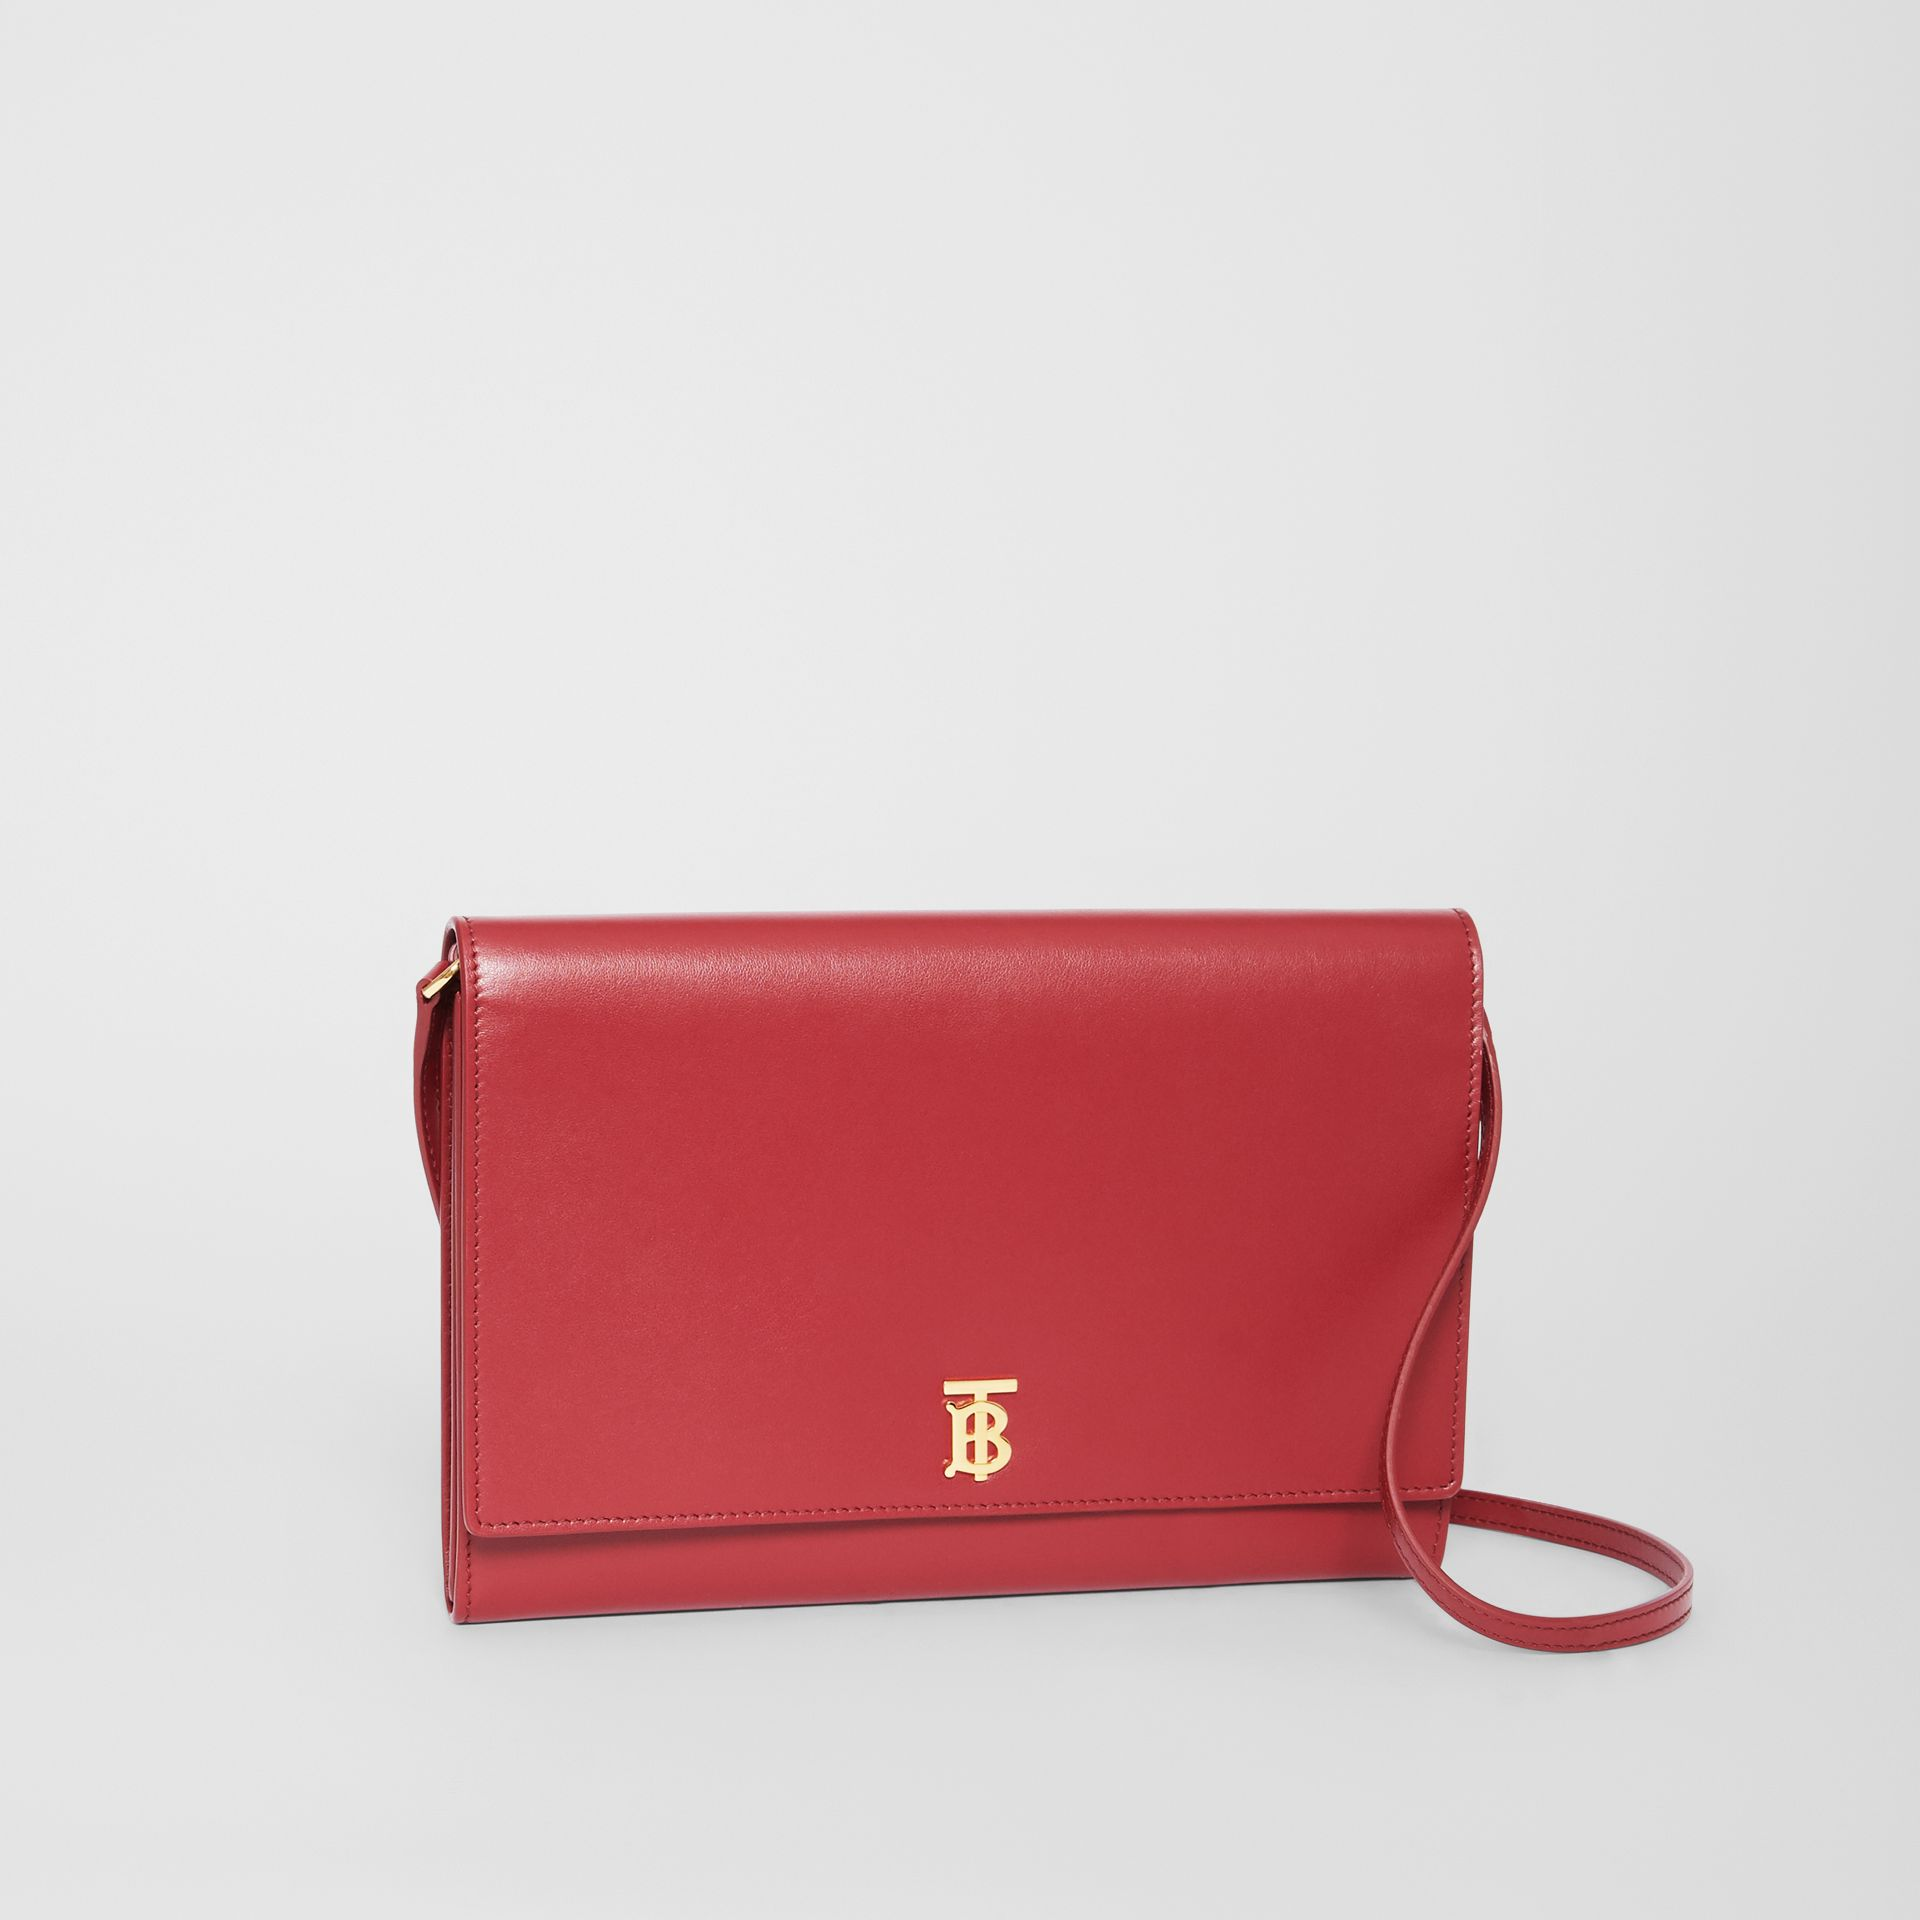 Monogram Motif Leather Bag with Detachable Strap in Crimson - Women | Burberry - gallery image 6